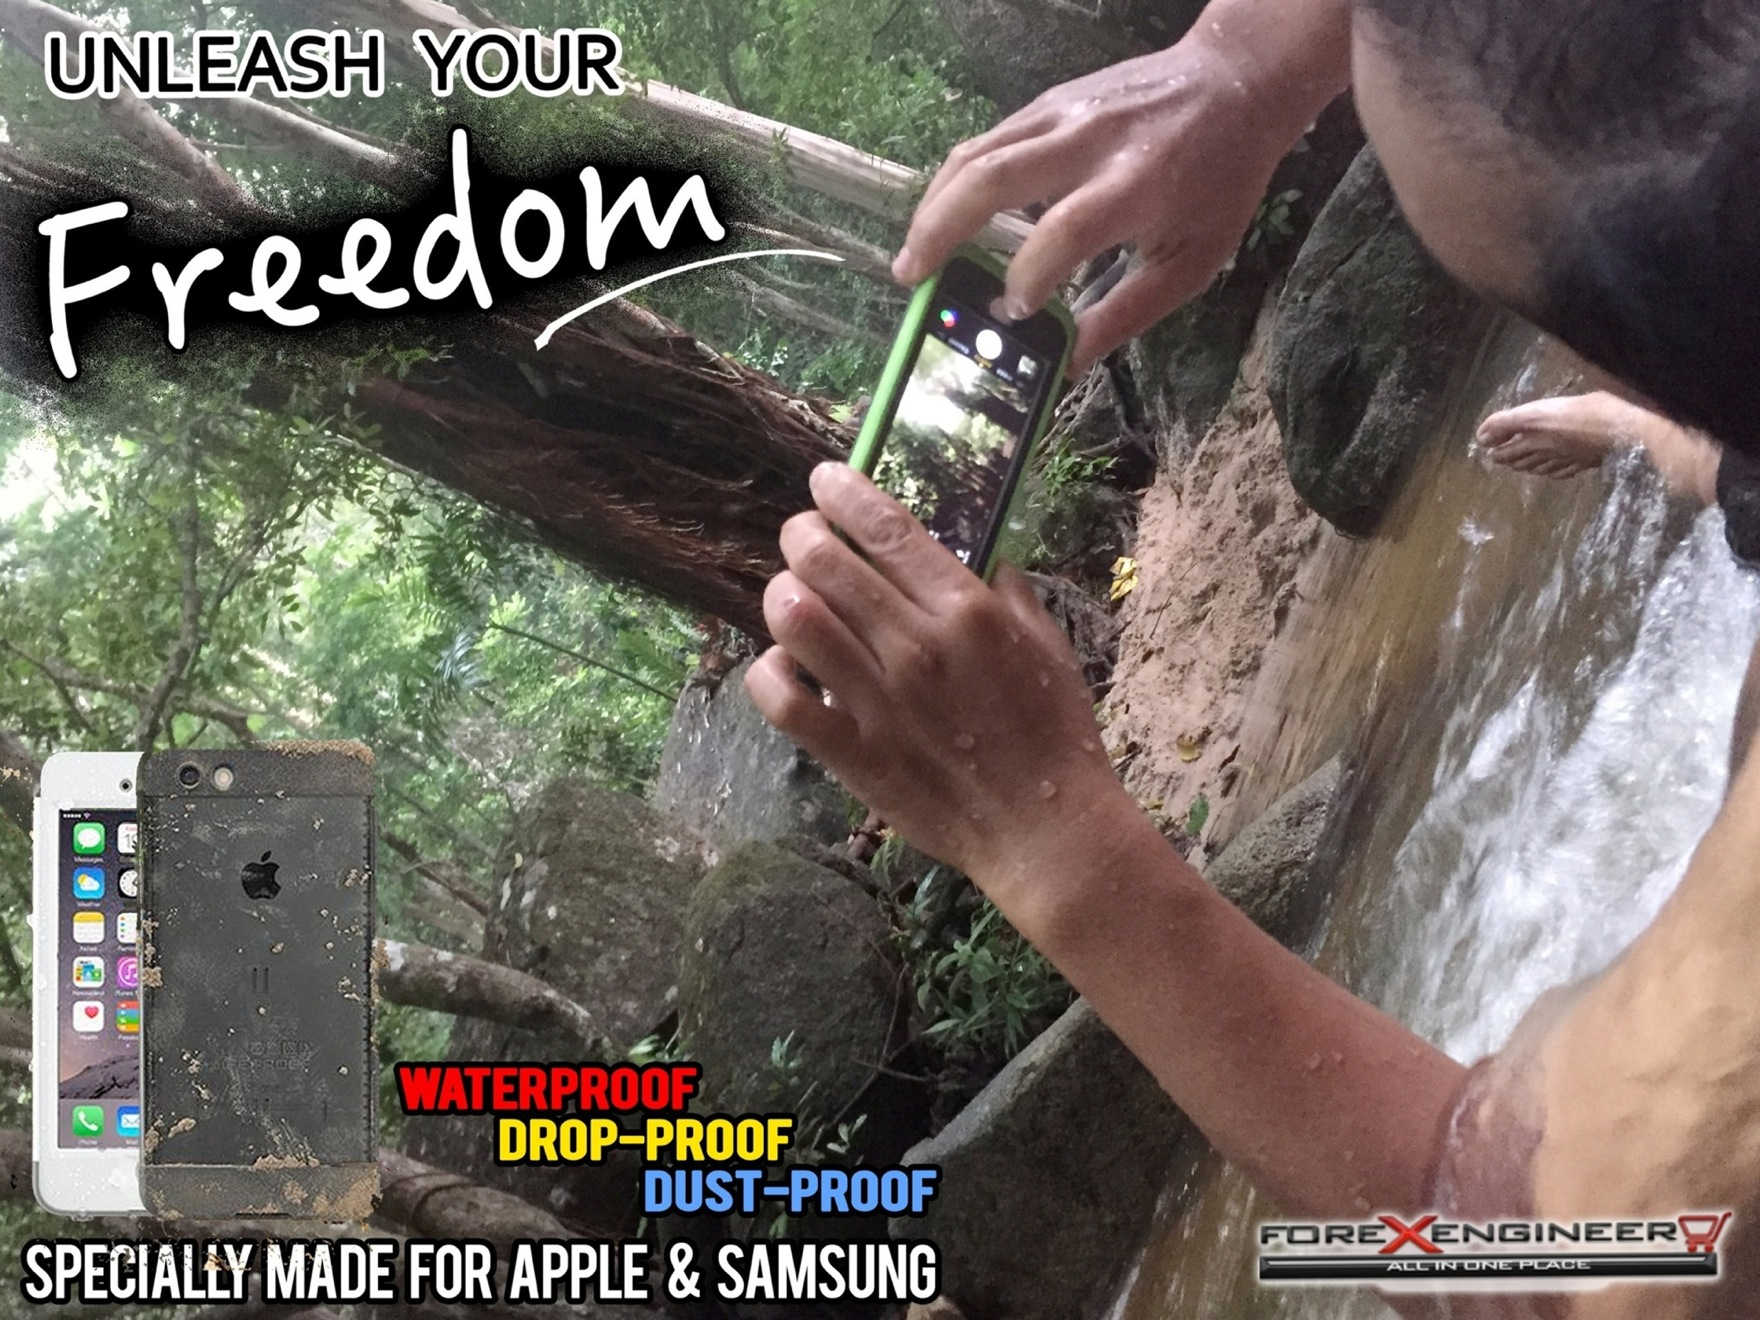 claim_freedom_with_lifeproof_gears_in_malaysia